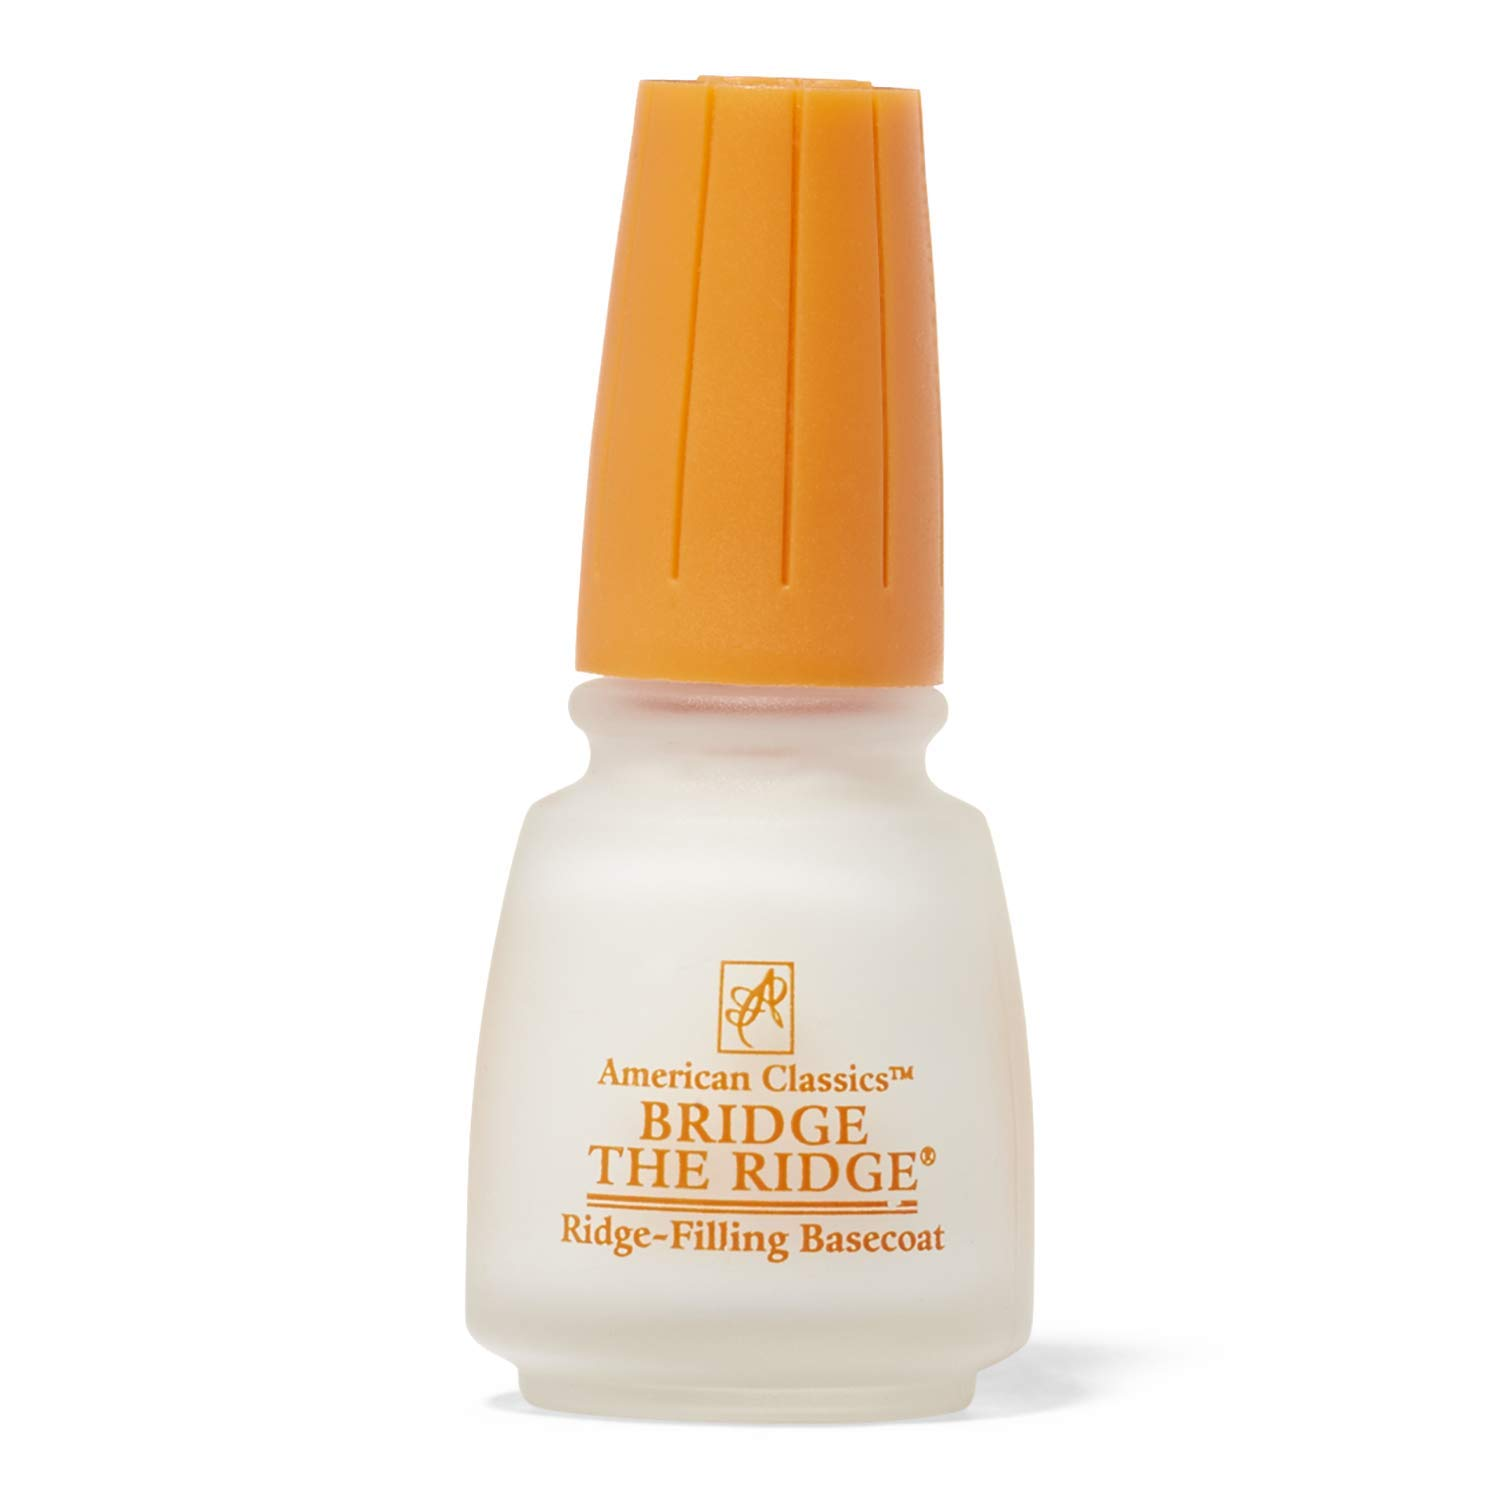 Bridge the Ridge Nail Treatment by ACI